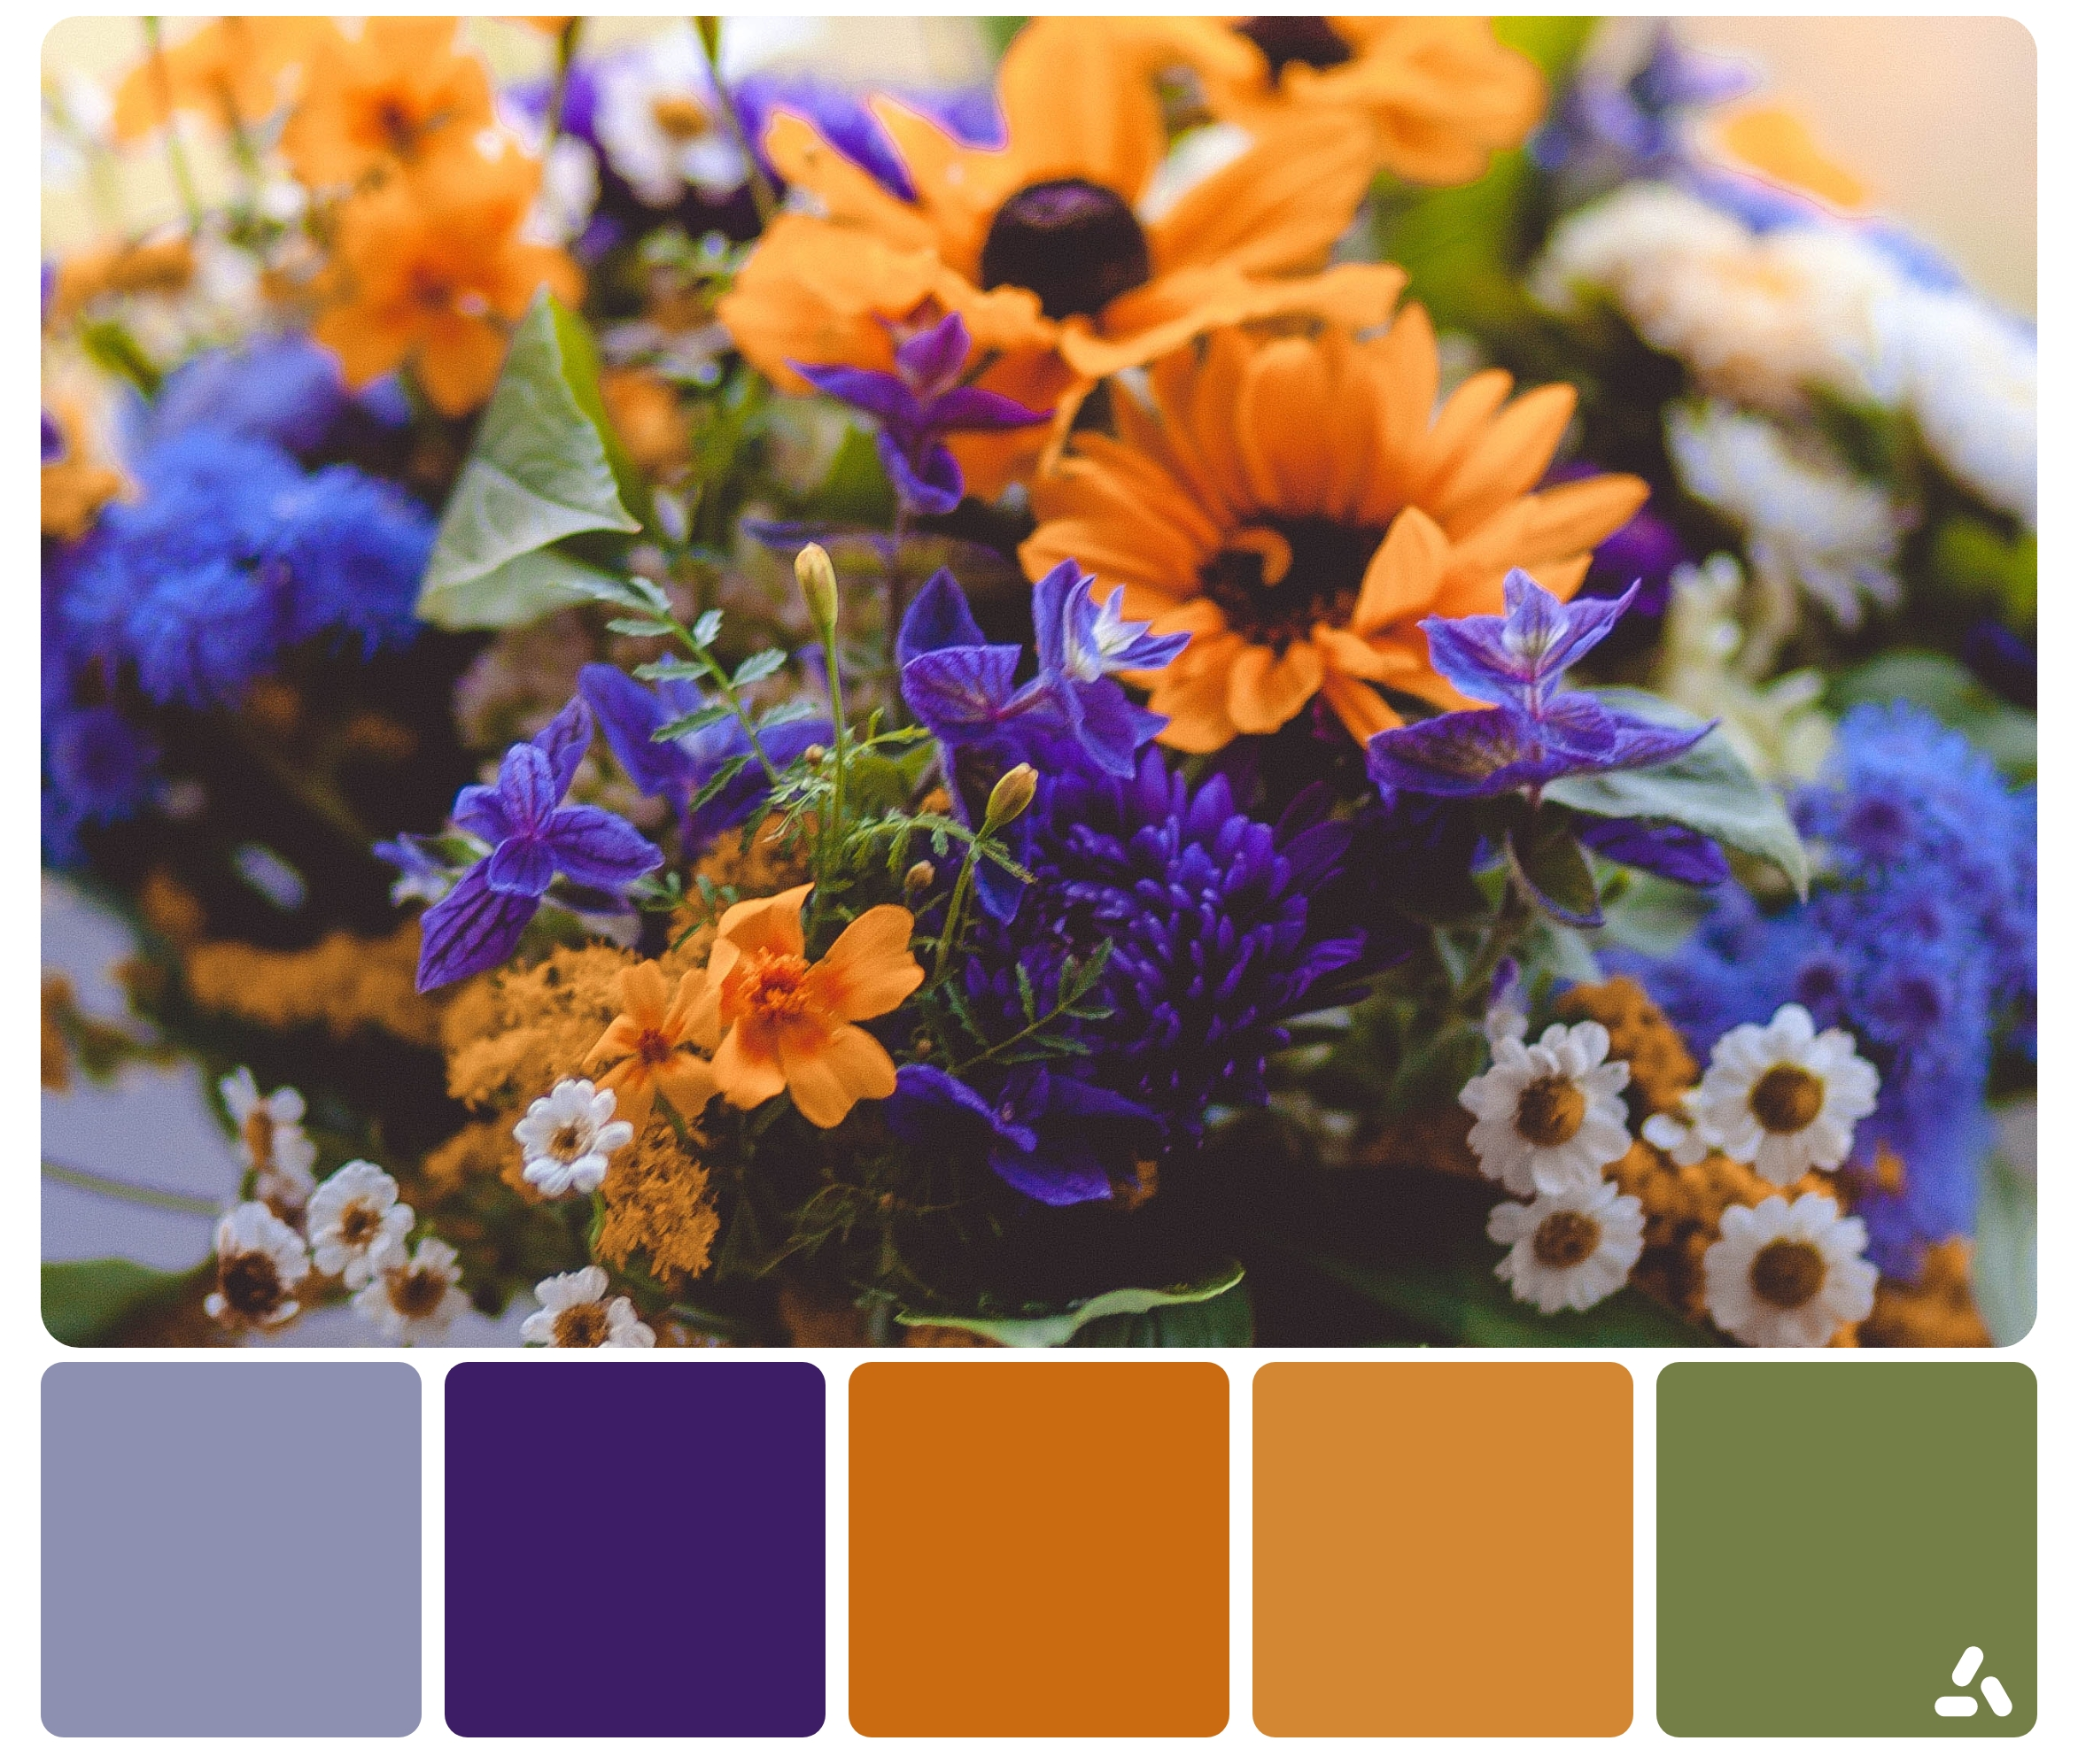 palette of colorful flowers